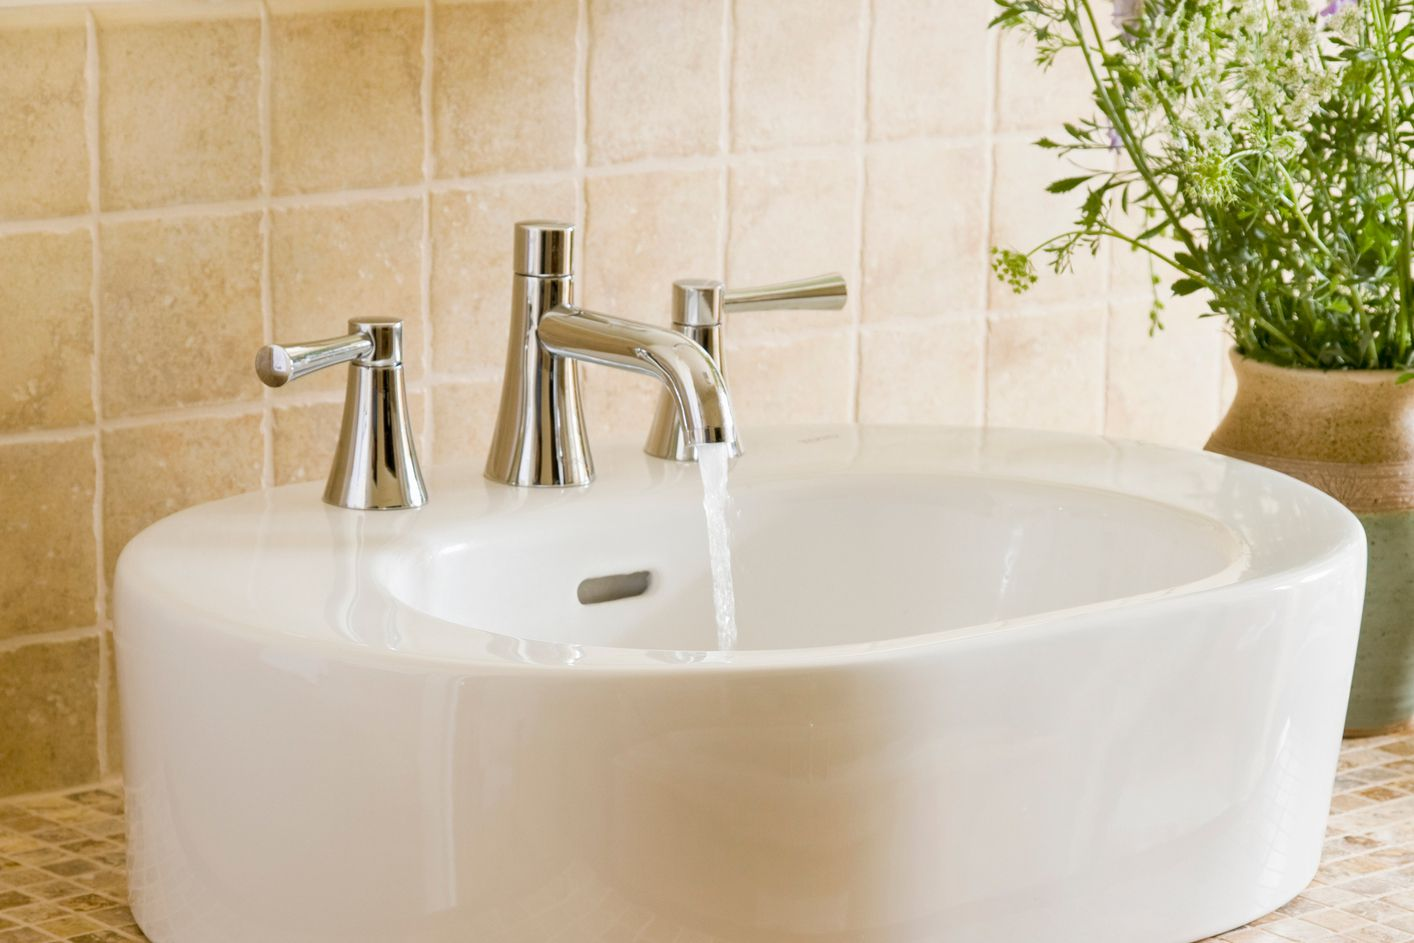 bathroom sink plumbing. Install Your Own AquaSource Faucet How to Pop Up Drain in a Bathroom Sink